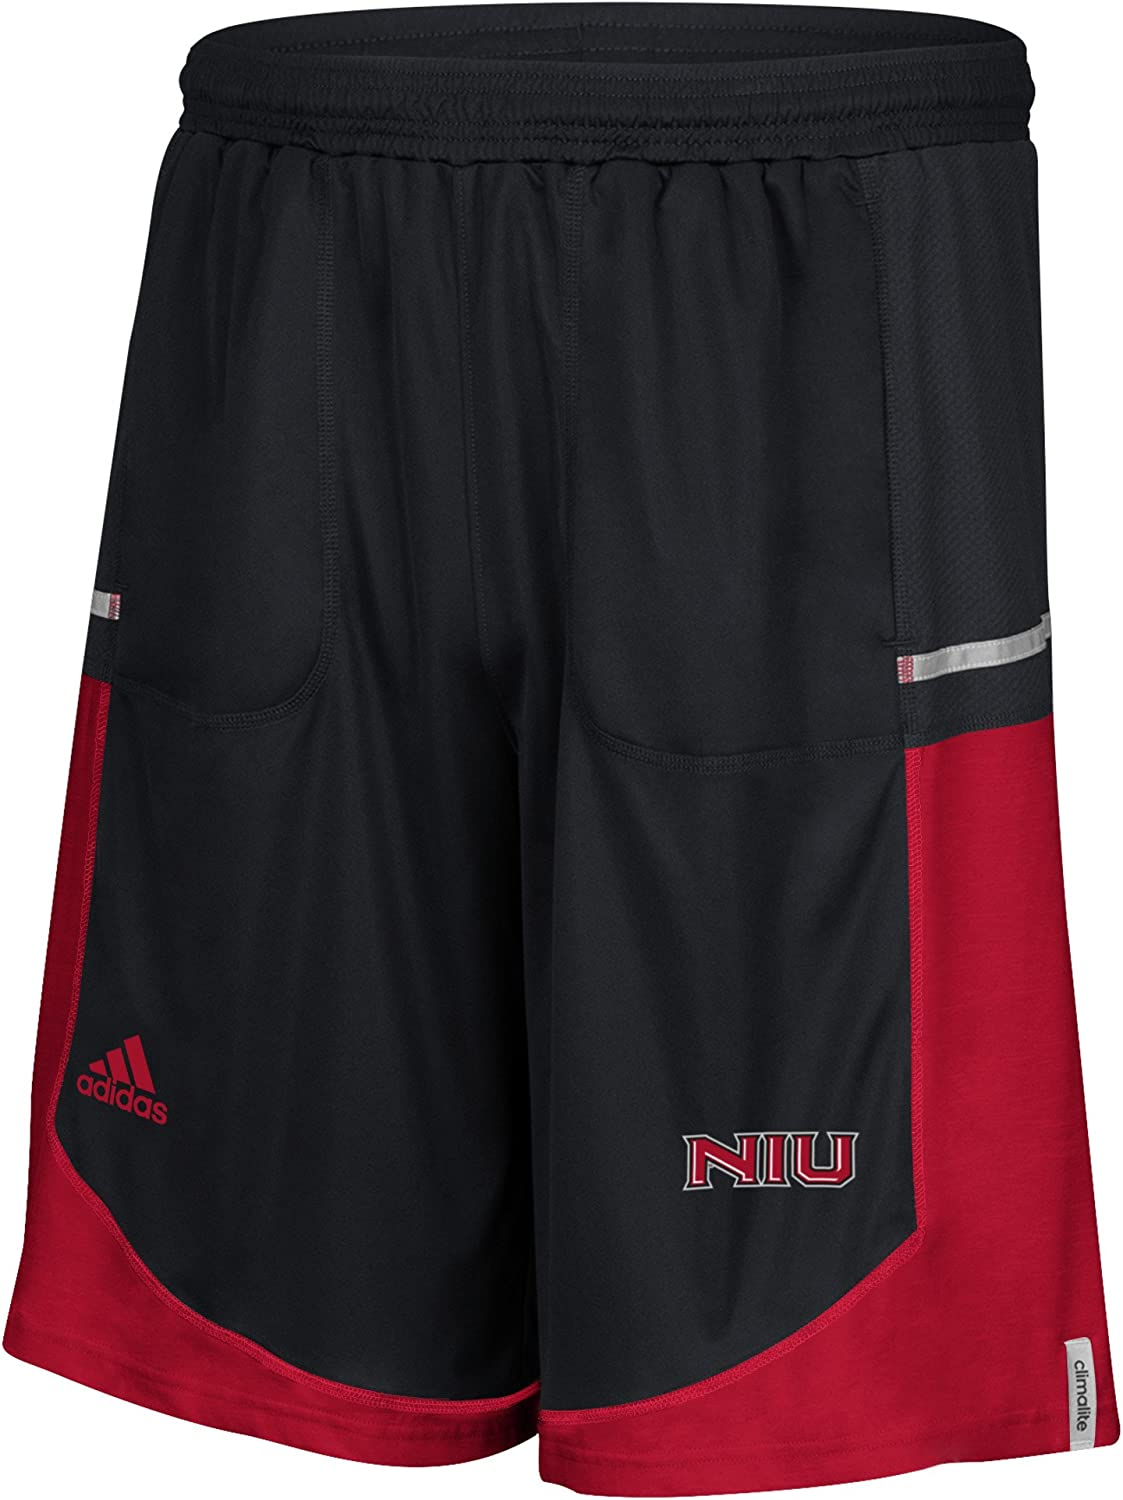 Max 43% OFF NCAA Men's Sideline Shorts Player Climalite Lowest price challenge